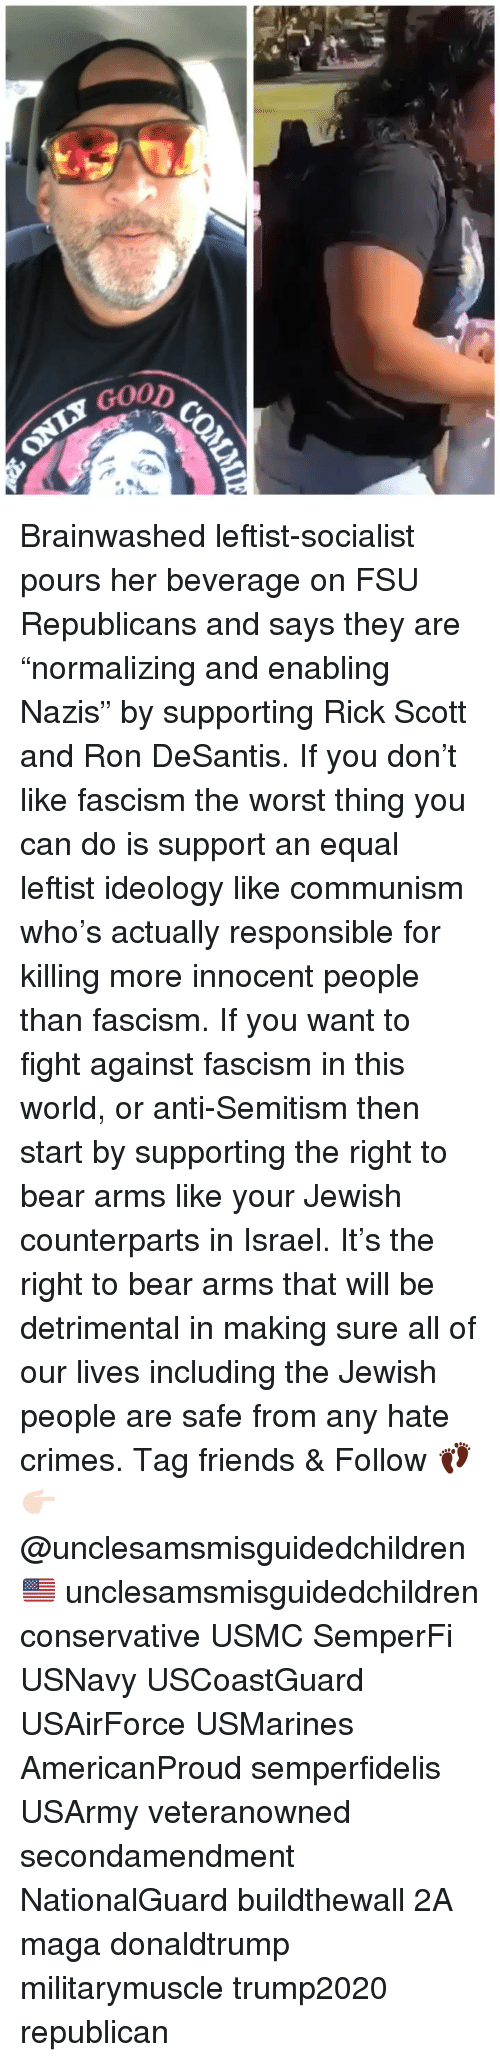 """Ideology: GoOD Brainwashed leftist-socialist pours her beverage on FSU Republicans and says they are """"normalizing and enabling Nazis"""" by supporting Rick Scott and Ron DeSantis. If you don't like fascism the worst thing you can do is support an equal leftist ideology like communism who's actually responsible for killing more innocent people than fascism. If you want to fight against fascism in this world, or anti-Semitism then start by supporting the right to bear arms like your Jewish counterparts in Israel. It's the right to bear arms that will be detrimental in making sure all of our lives including the Jewish people are safe from any hate crimes. Tag friends & Follow 👣 👉🏻 @unclesamsmisguidedchildren 🇺🇸 unclesamsmisguidedchildren conservative USMC SemperFi USNavy USCoastGuard USAirForce USMarines AmericanProud semperfidelis USArmy veteranowned secondamendment NationalGuard buildthewall 2A maga donaldtrump militarymuscle trump2020 republican"""